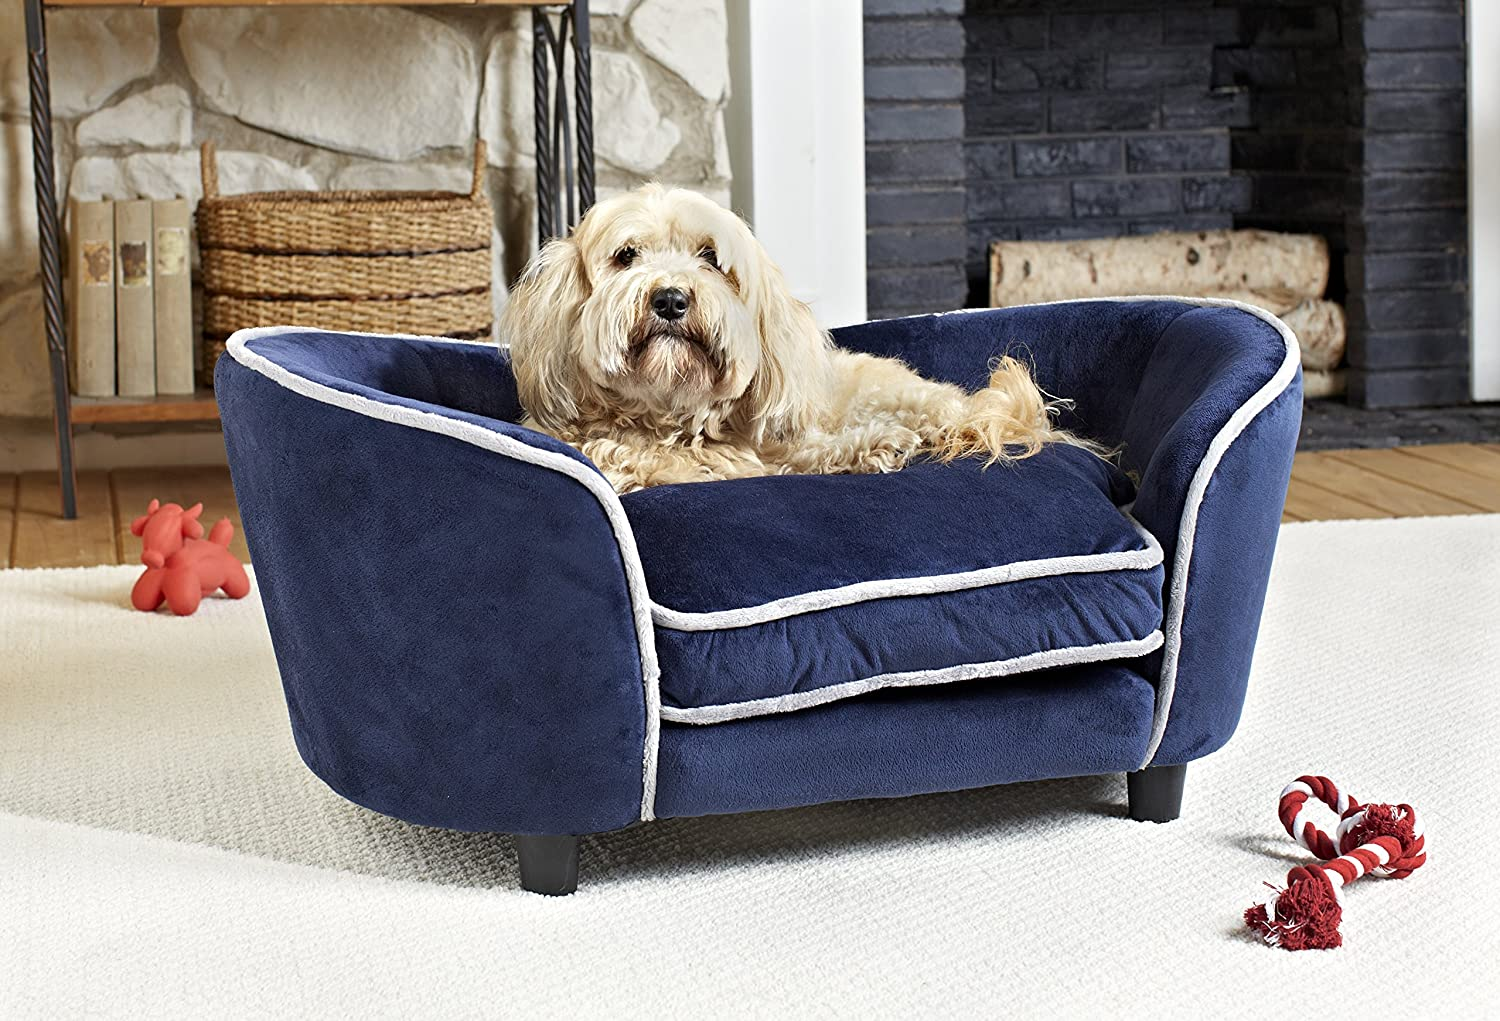 Navybluee LargeWohnDirect Designer Pet Sofa Bed for Dogs & Cats   Durable, Robust & Easy to Clean   Comfortable Soft Cushion for Your Dog and Practical Toy Storage Bag for Toys   64x45x40cm